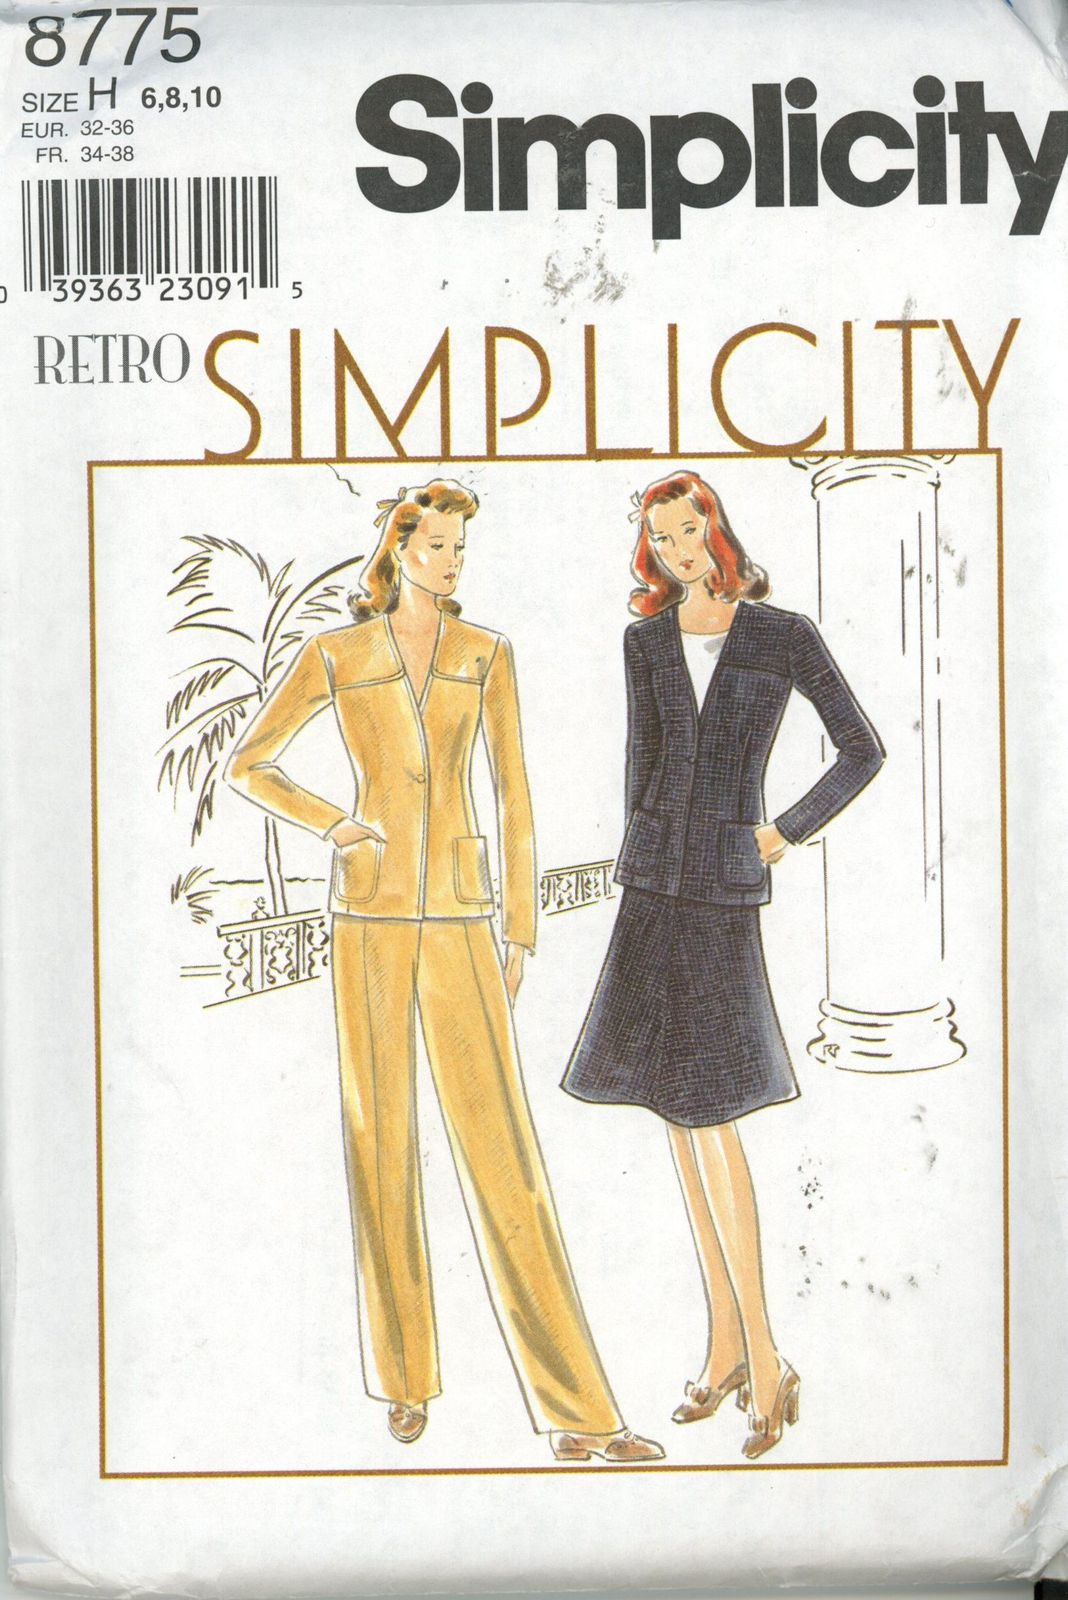 Simplicity 8775 Retro Misses Jacket, Skirt, Pants - Size 6,8,10 UNCUT